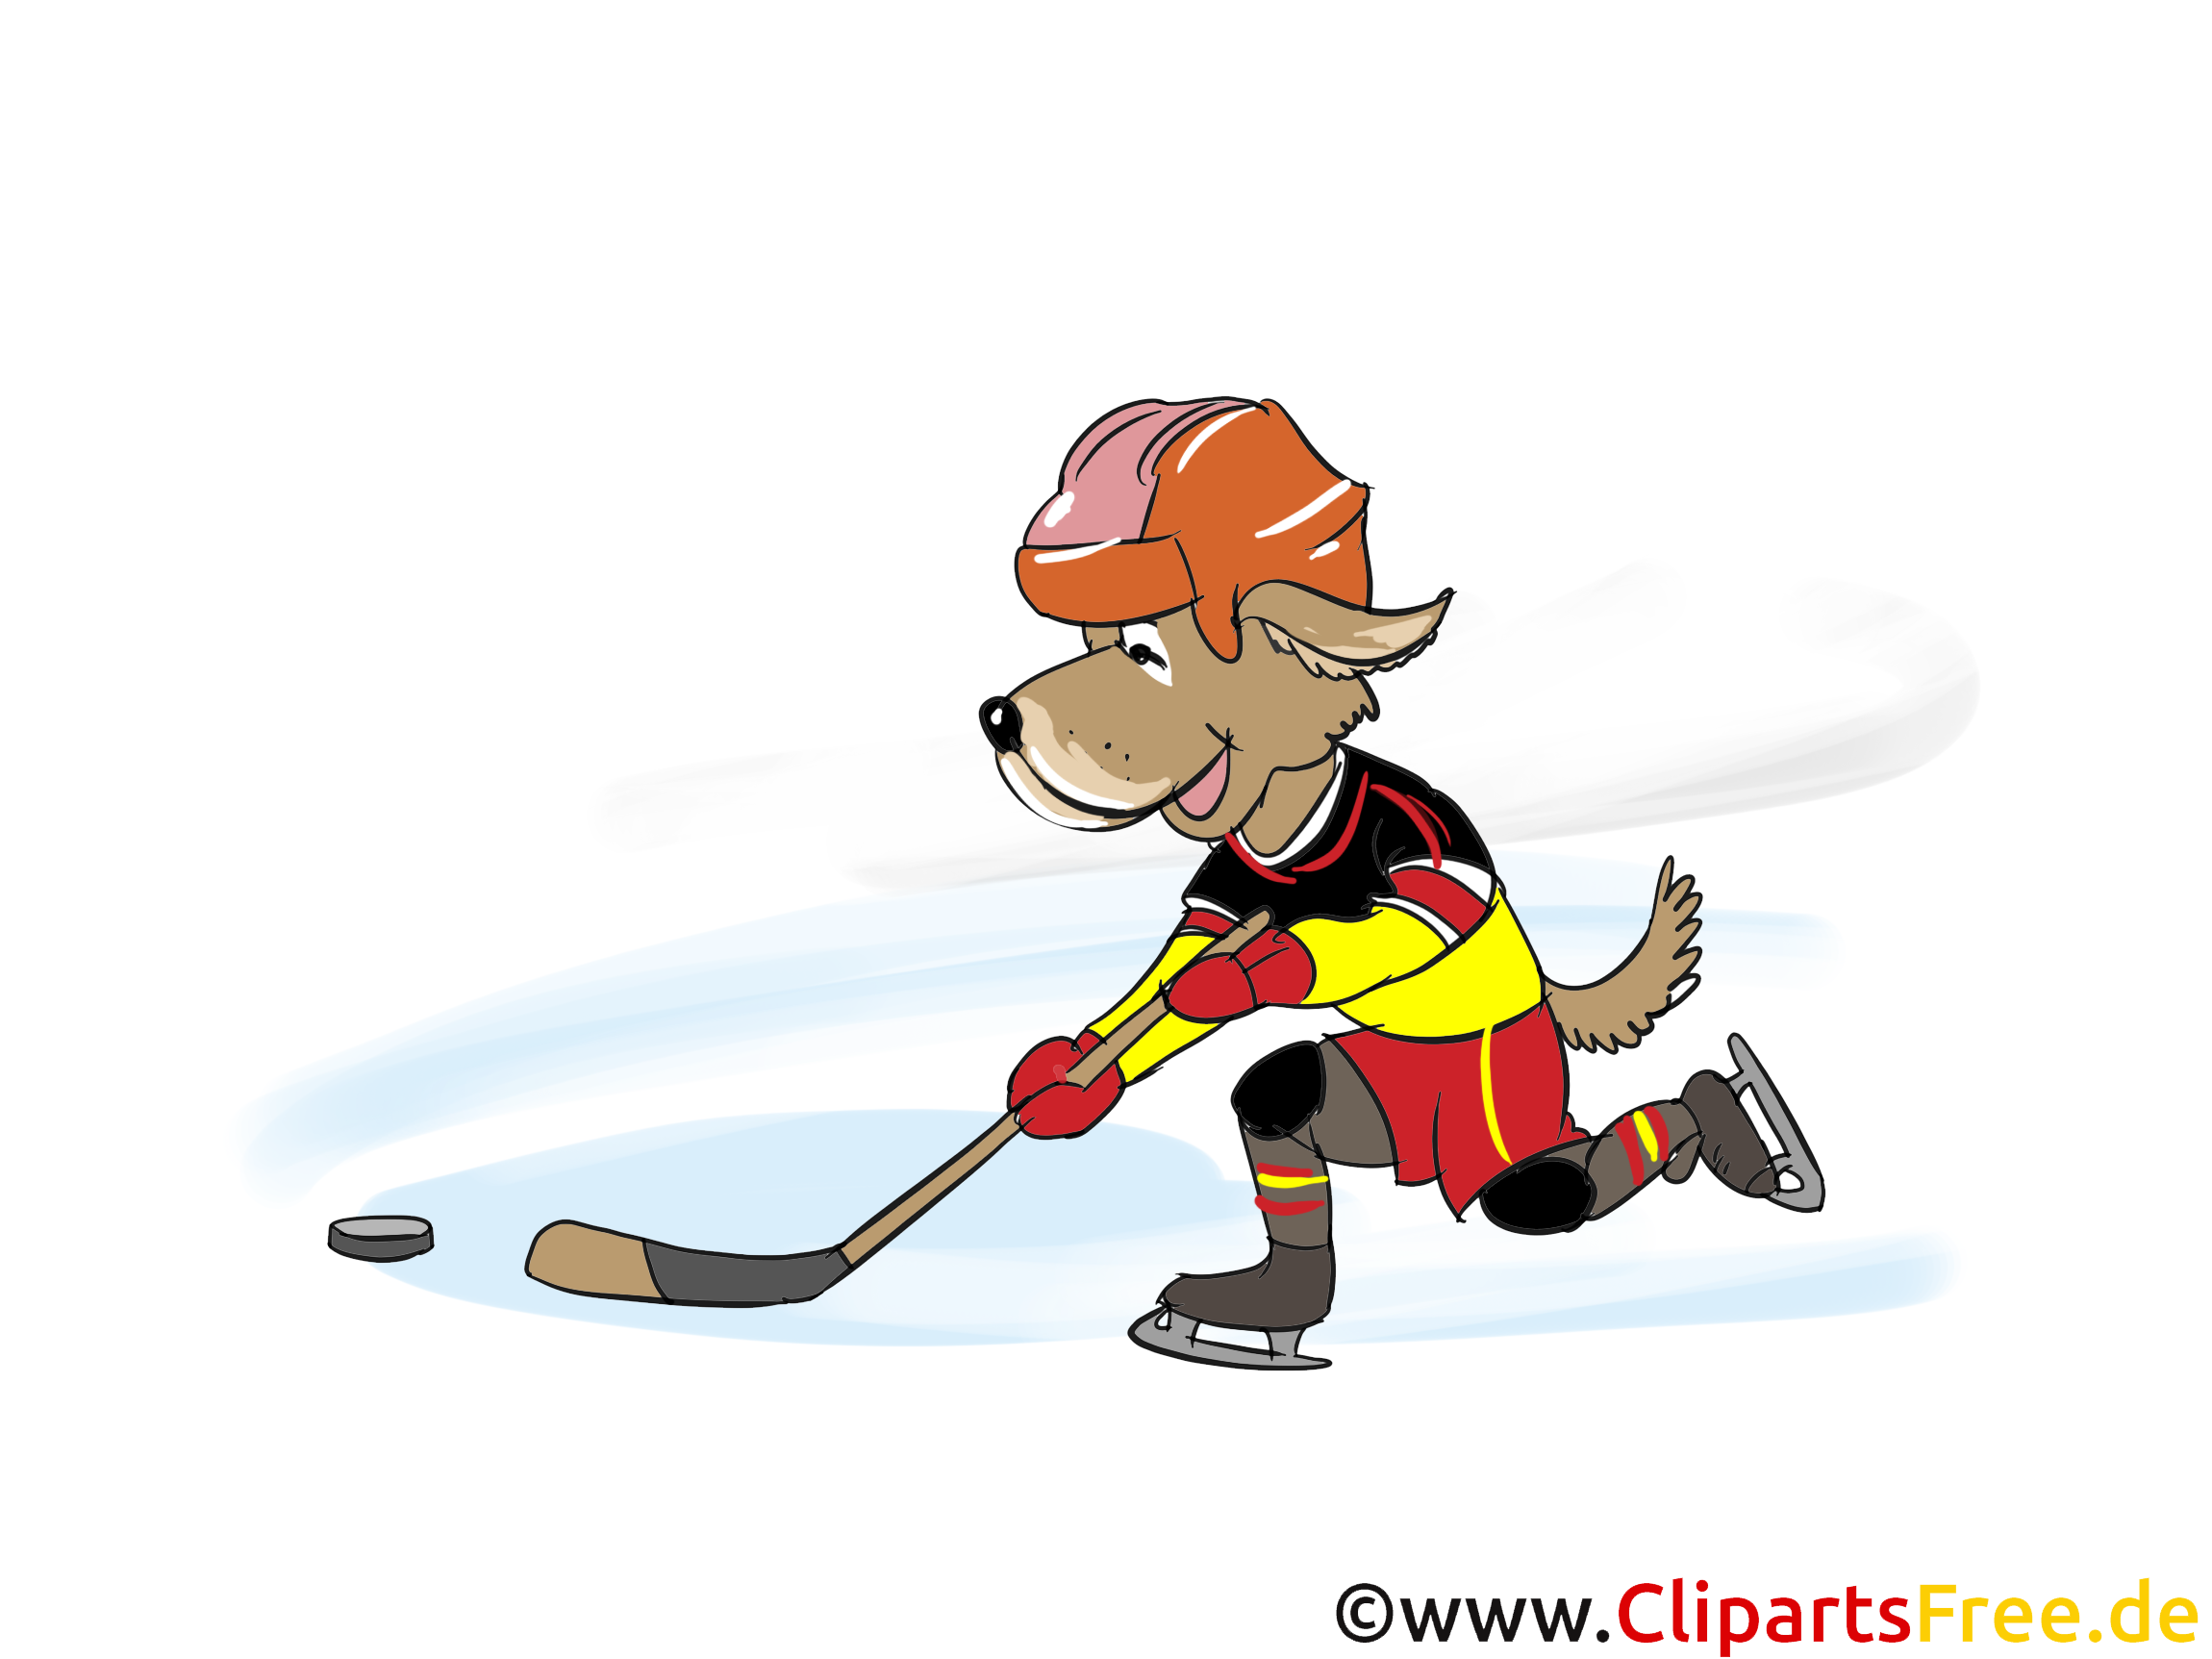 Palet illustration - Hockey images